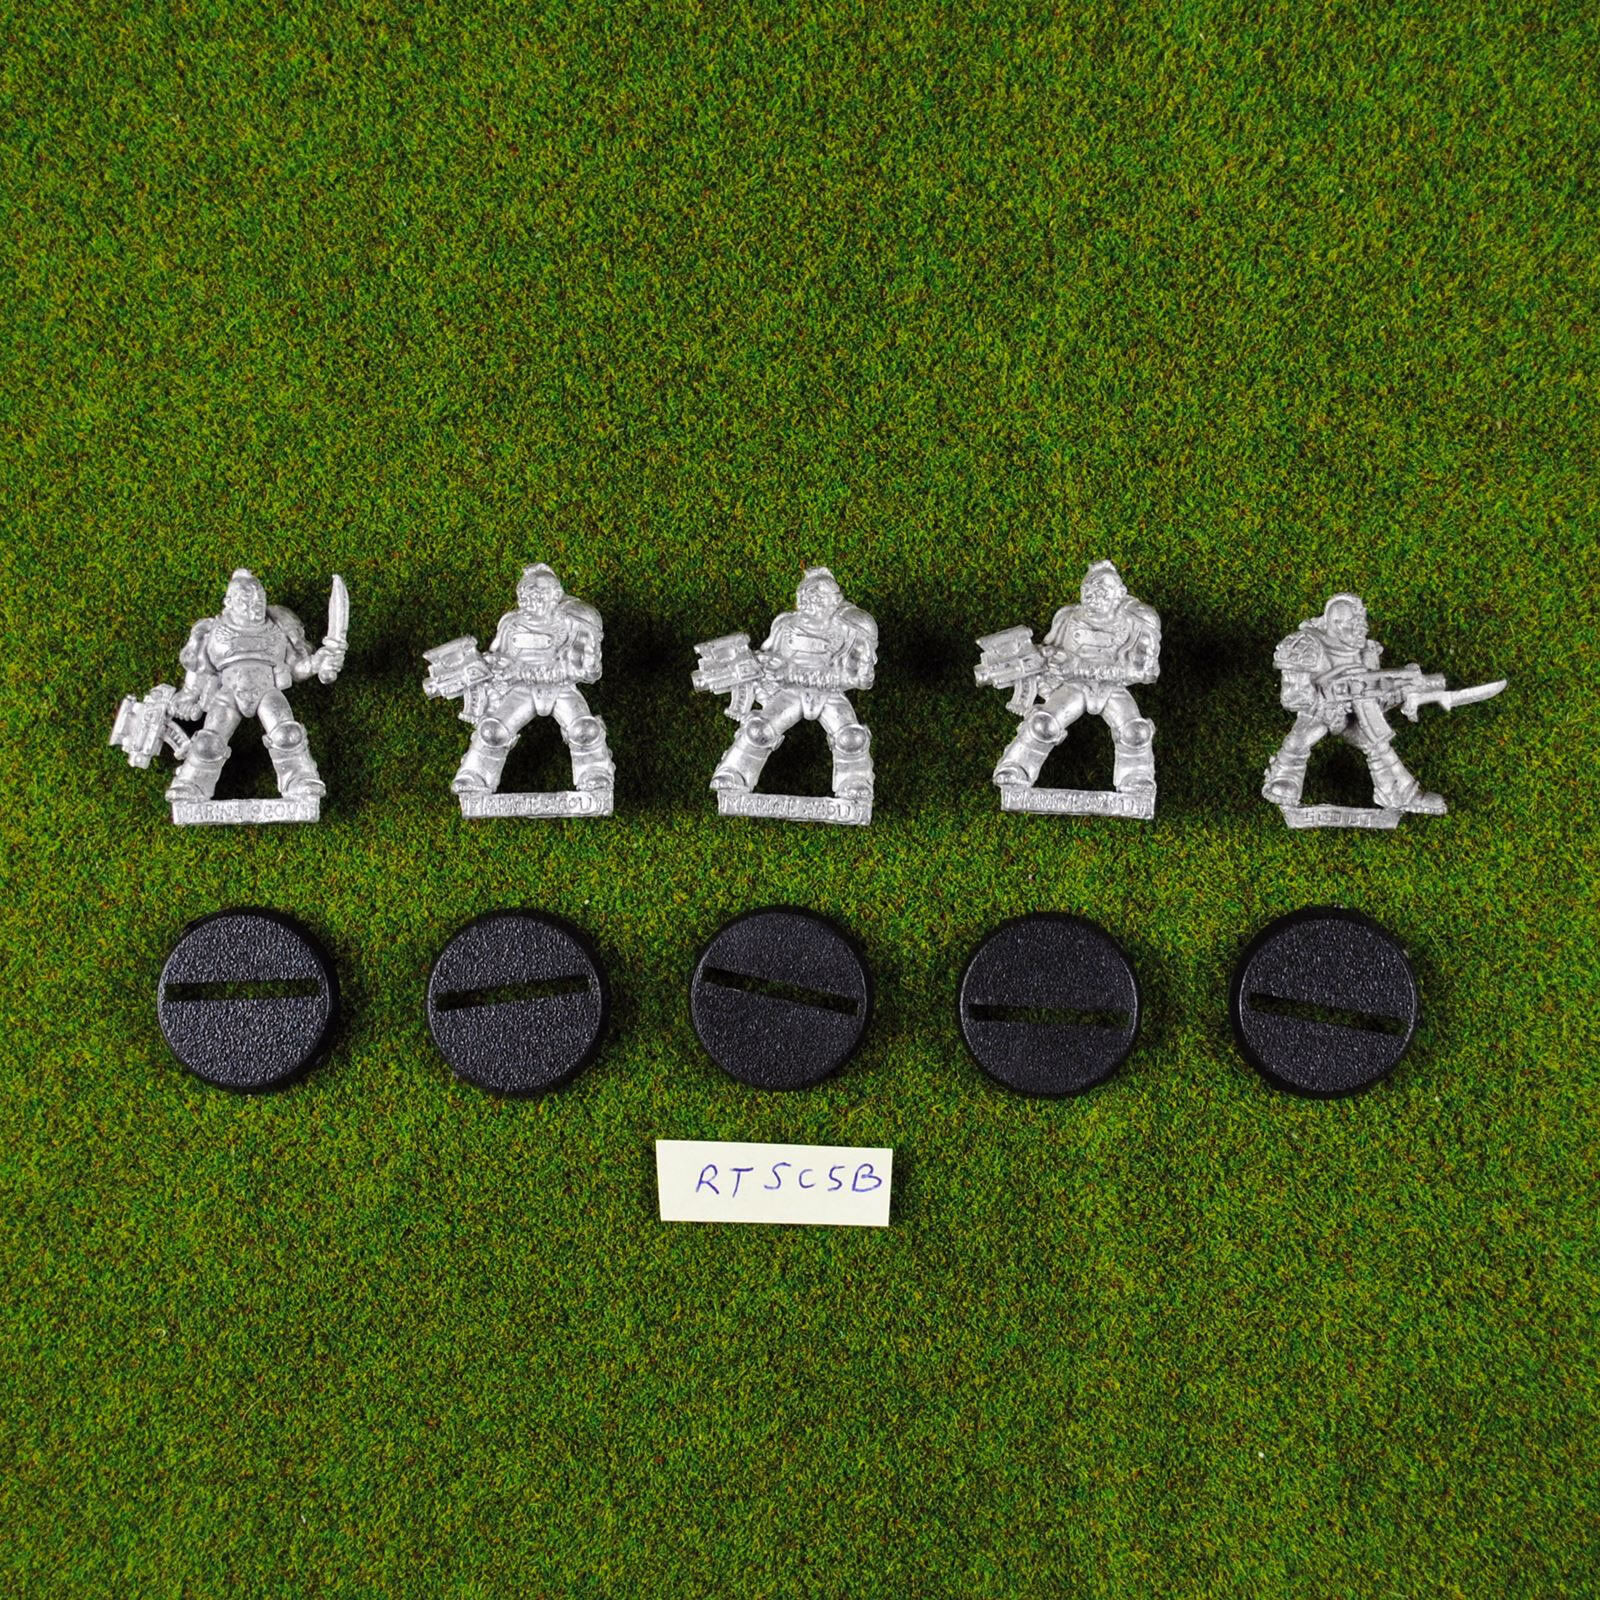 Warhammer 40K Space Marine Scouts (x5) Metal Rogue Trader Rare OOP Citadel Scout